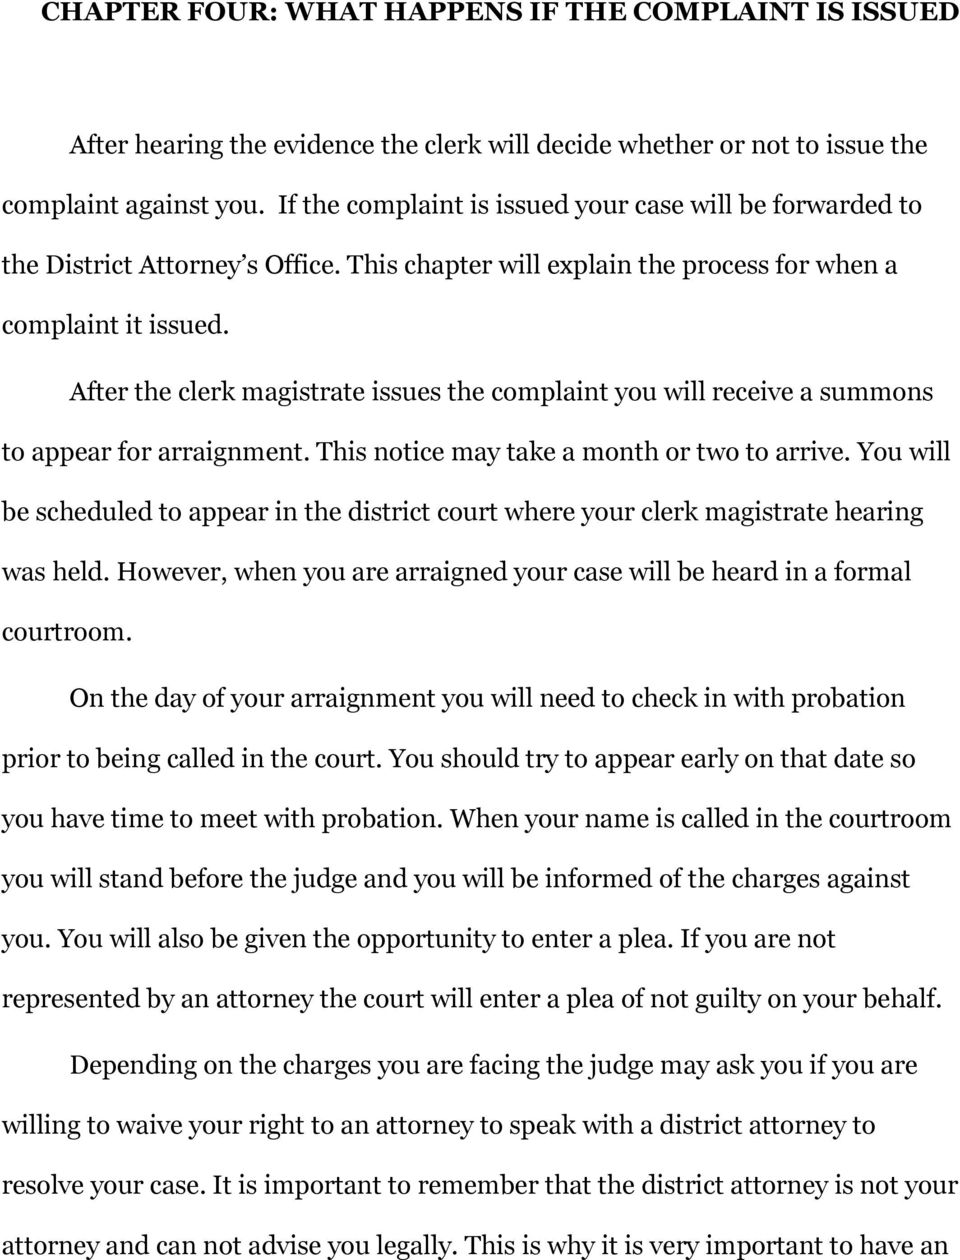 After the clerk magistrate issues the complaint you will receive a summons to appear for arraignment. This notice may take a month or two to arrive.